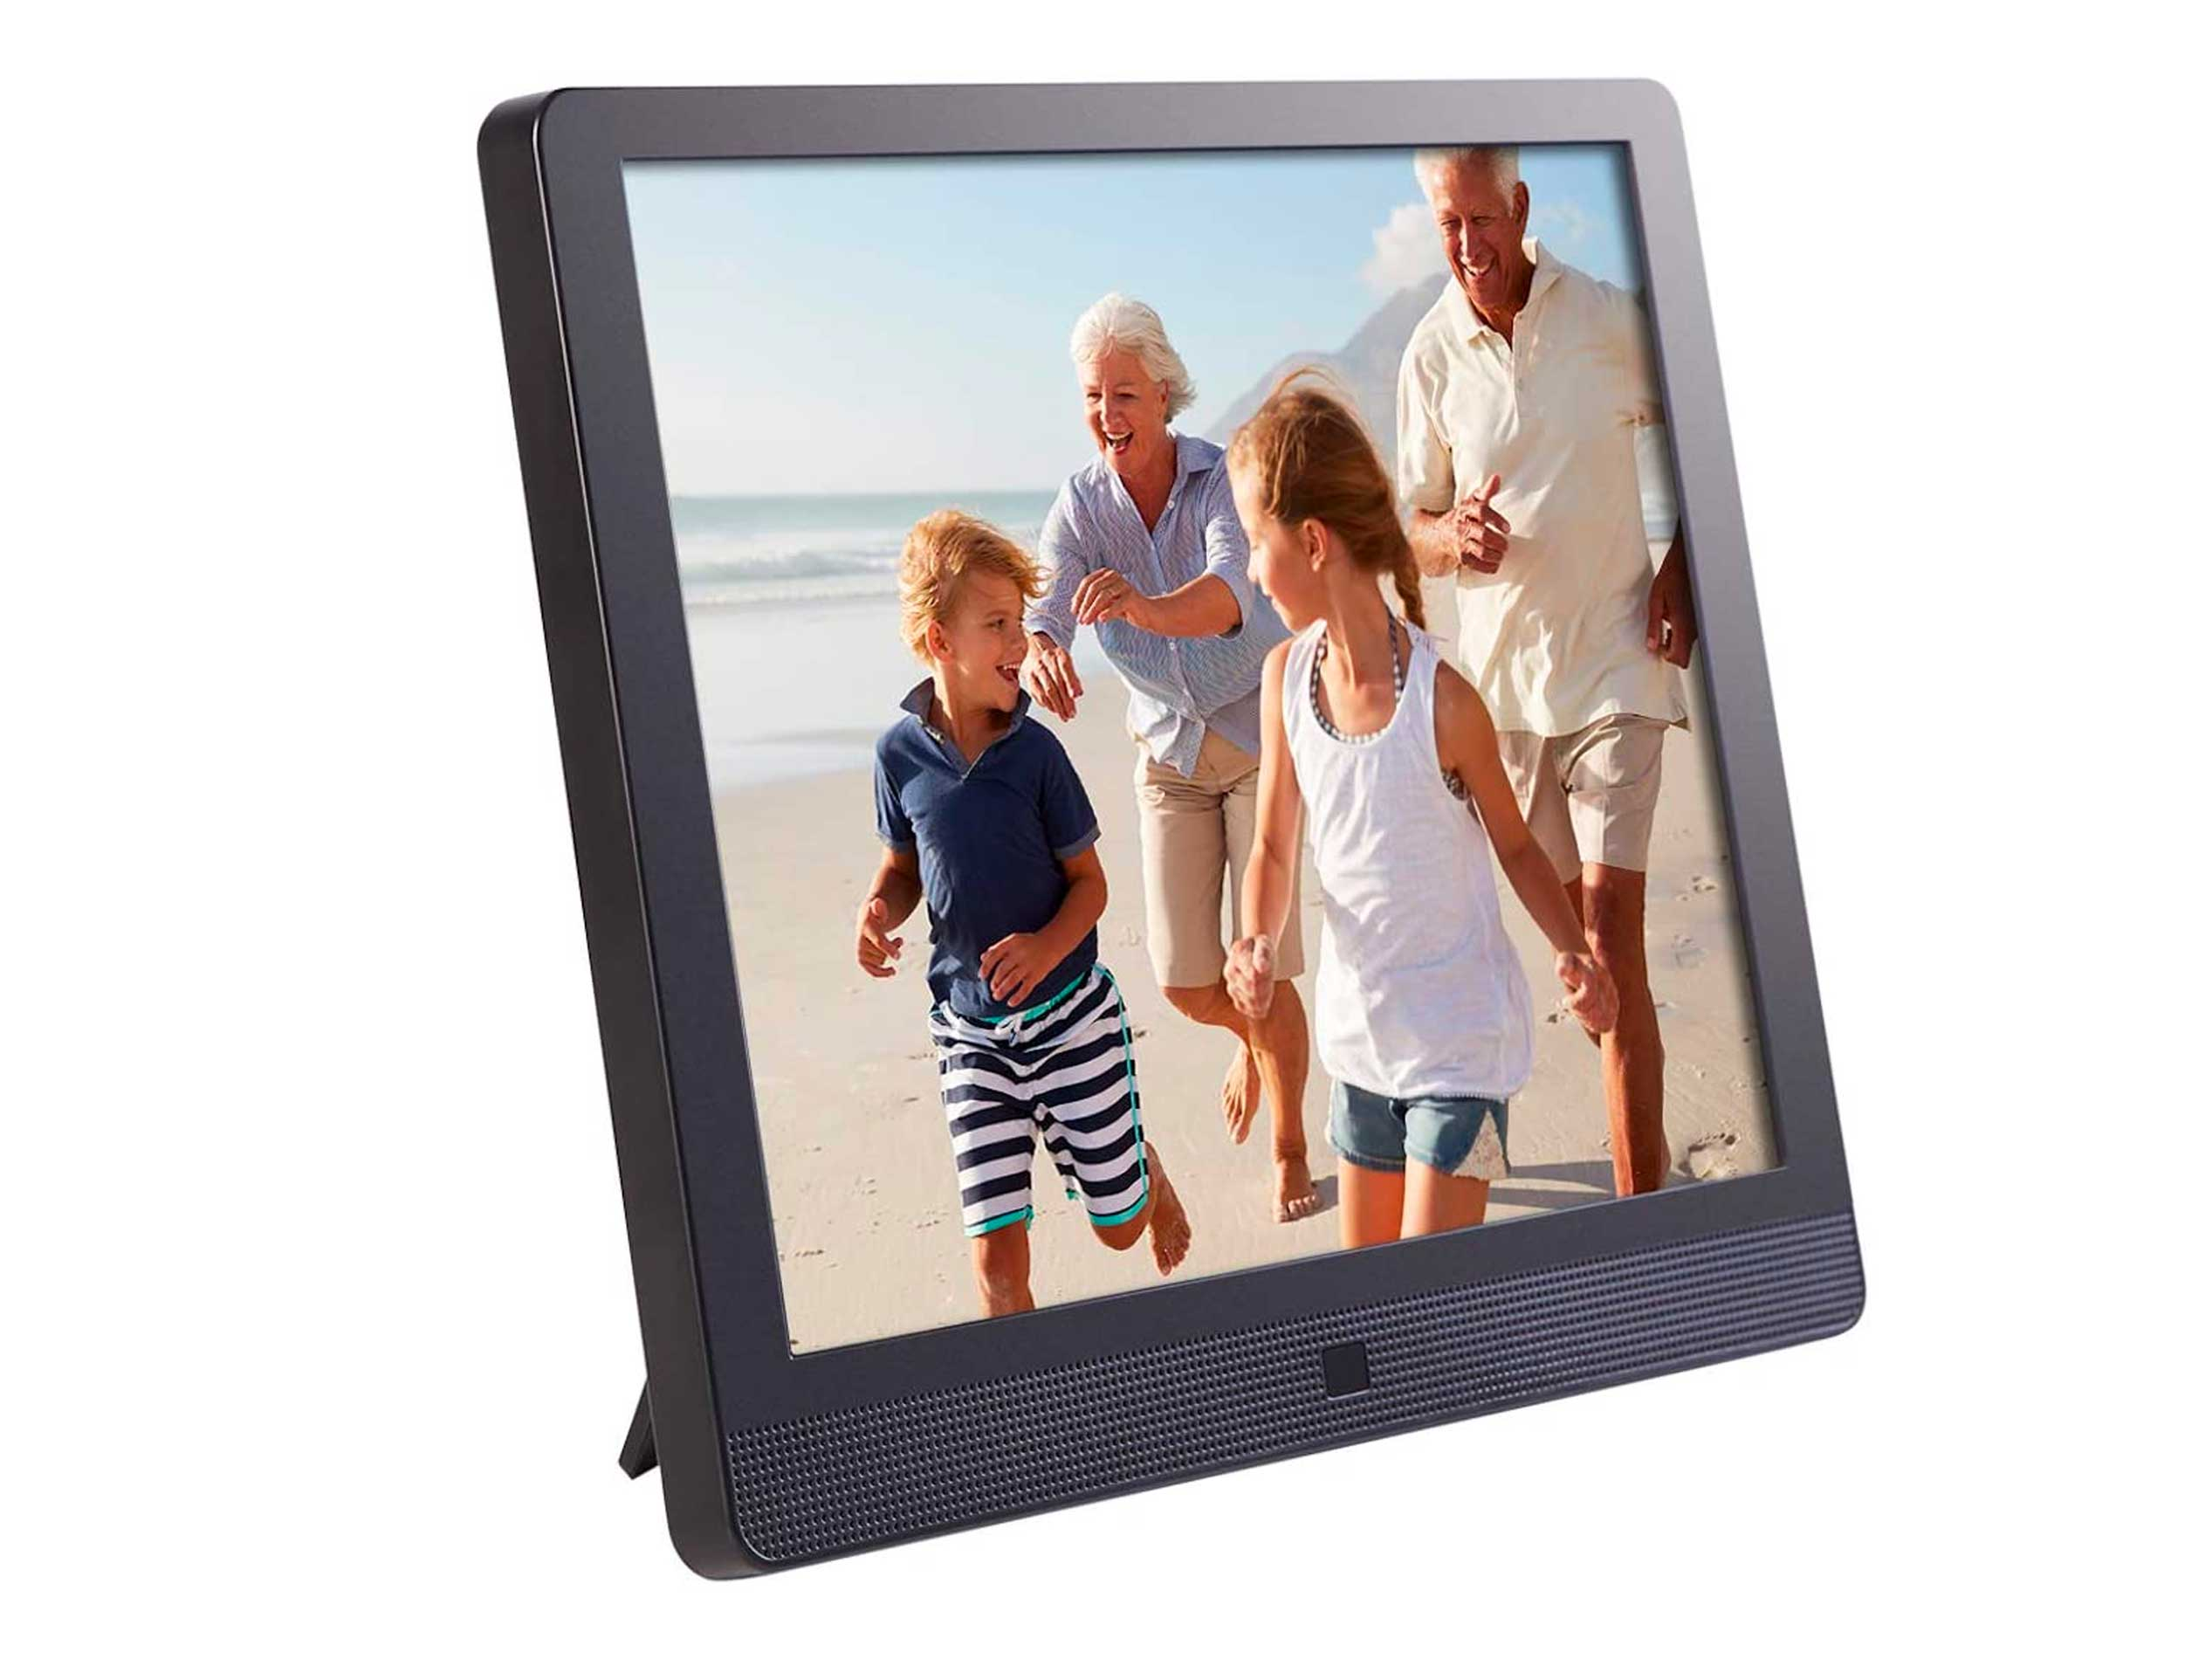 Pix-Star 10 Inch Wi-Fi Cloud Digital Picture Frame with IPS high resolution display, Email, iPhone iOS and Android app, DLNA and Motion Sensor